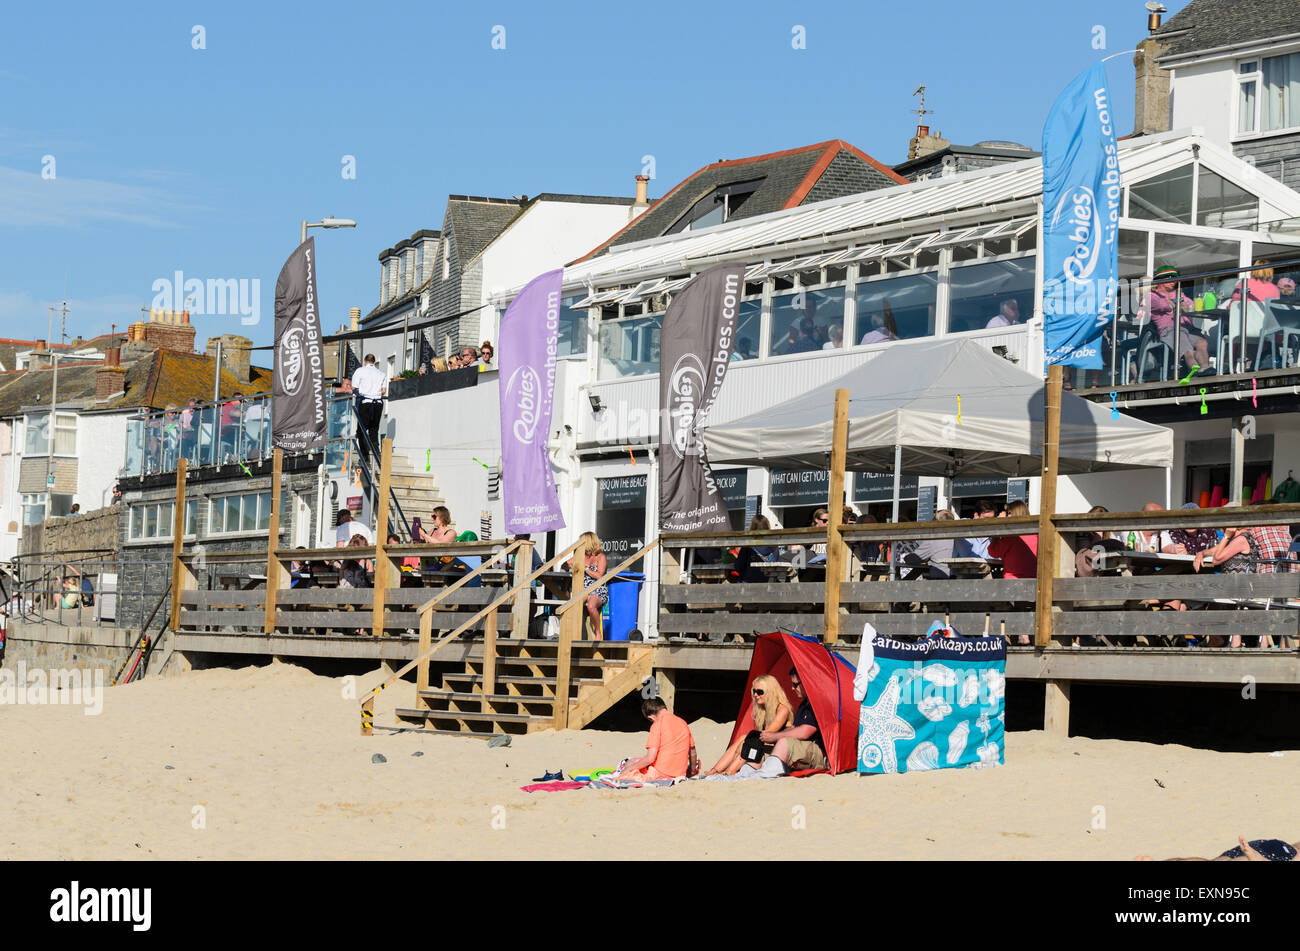 Porthmeor Beach Cafe, a popular venue for food and drink on Porthmeor Beach, St Ives, Cornwall, England, U.K. - Stock Image